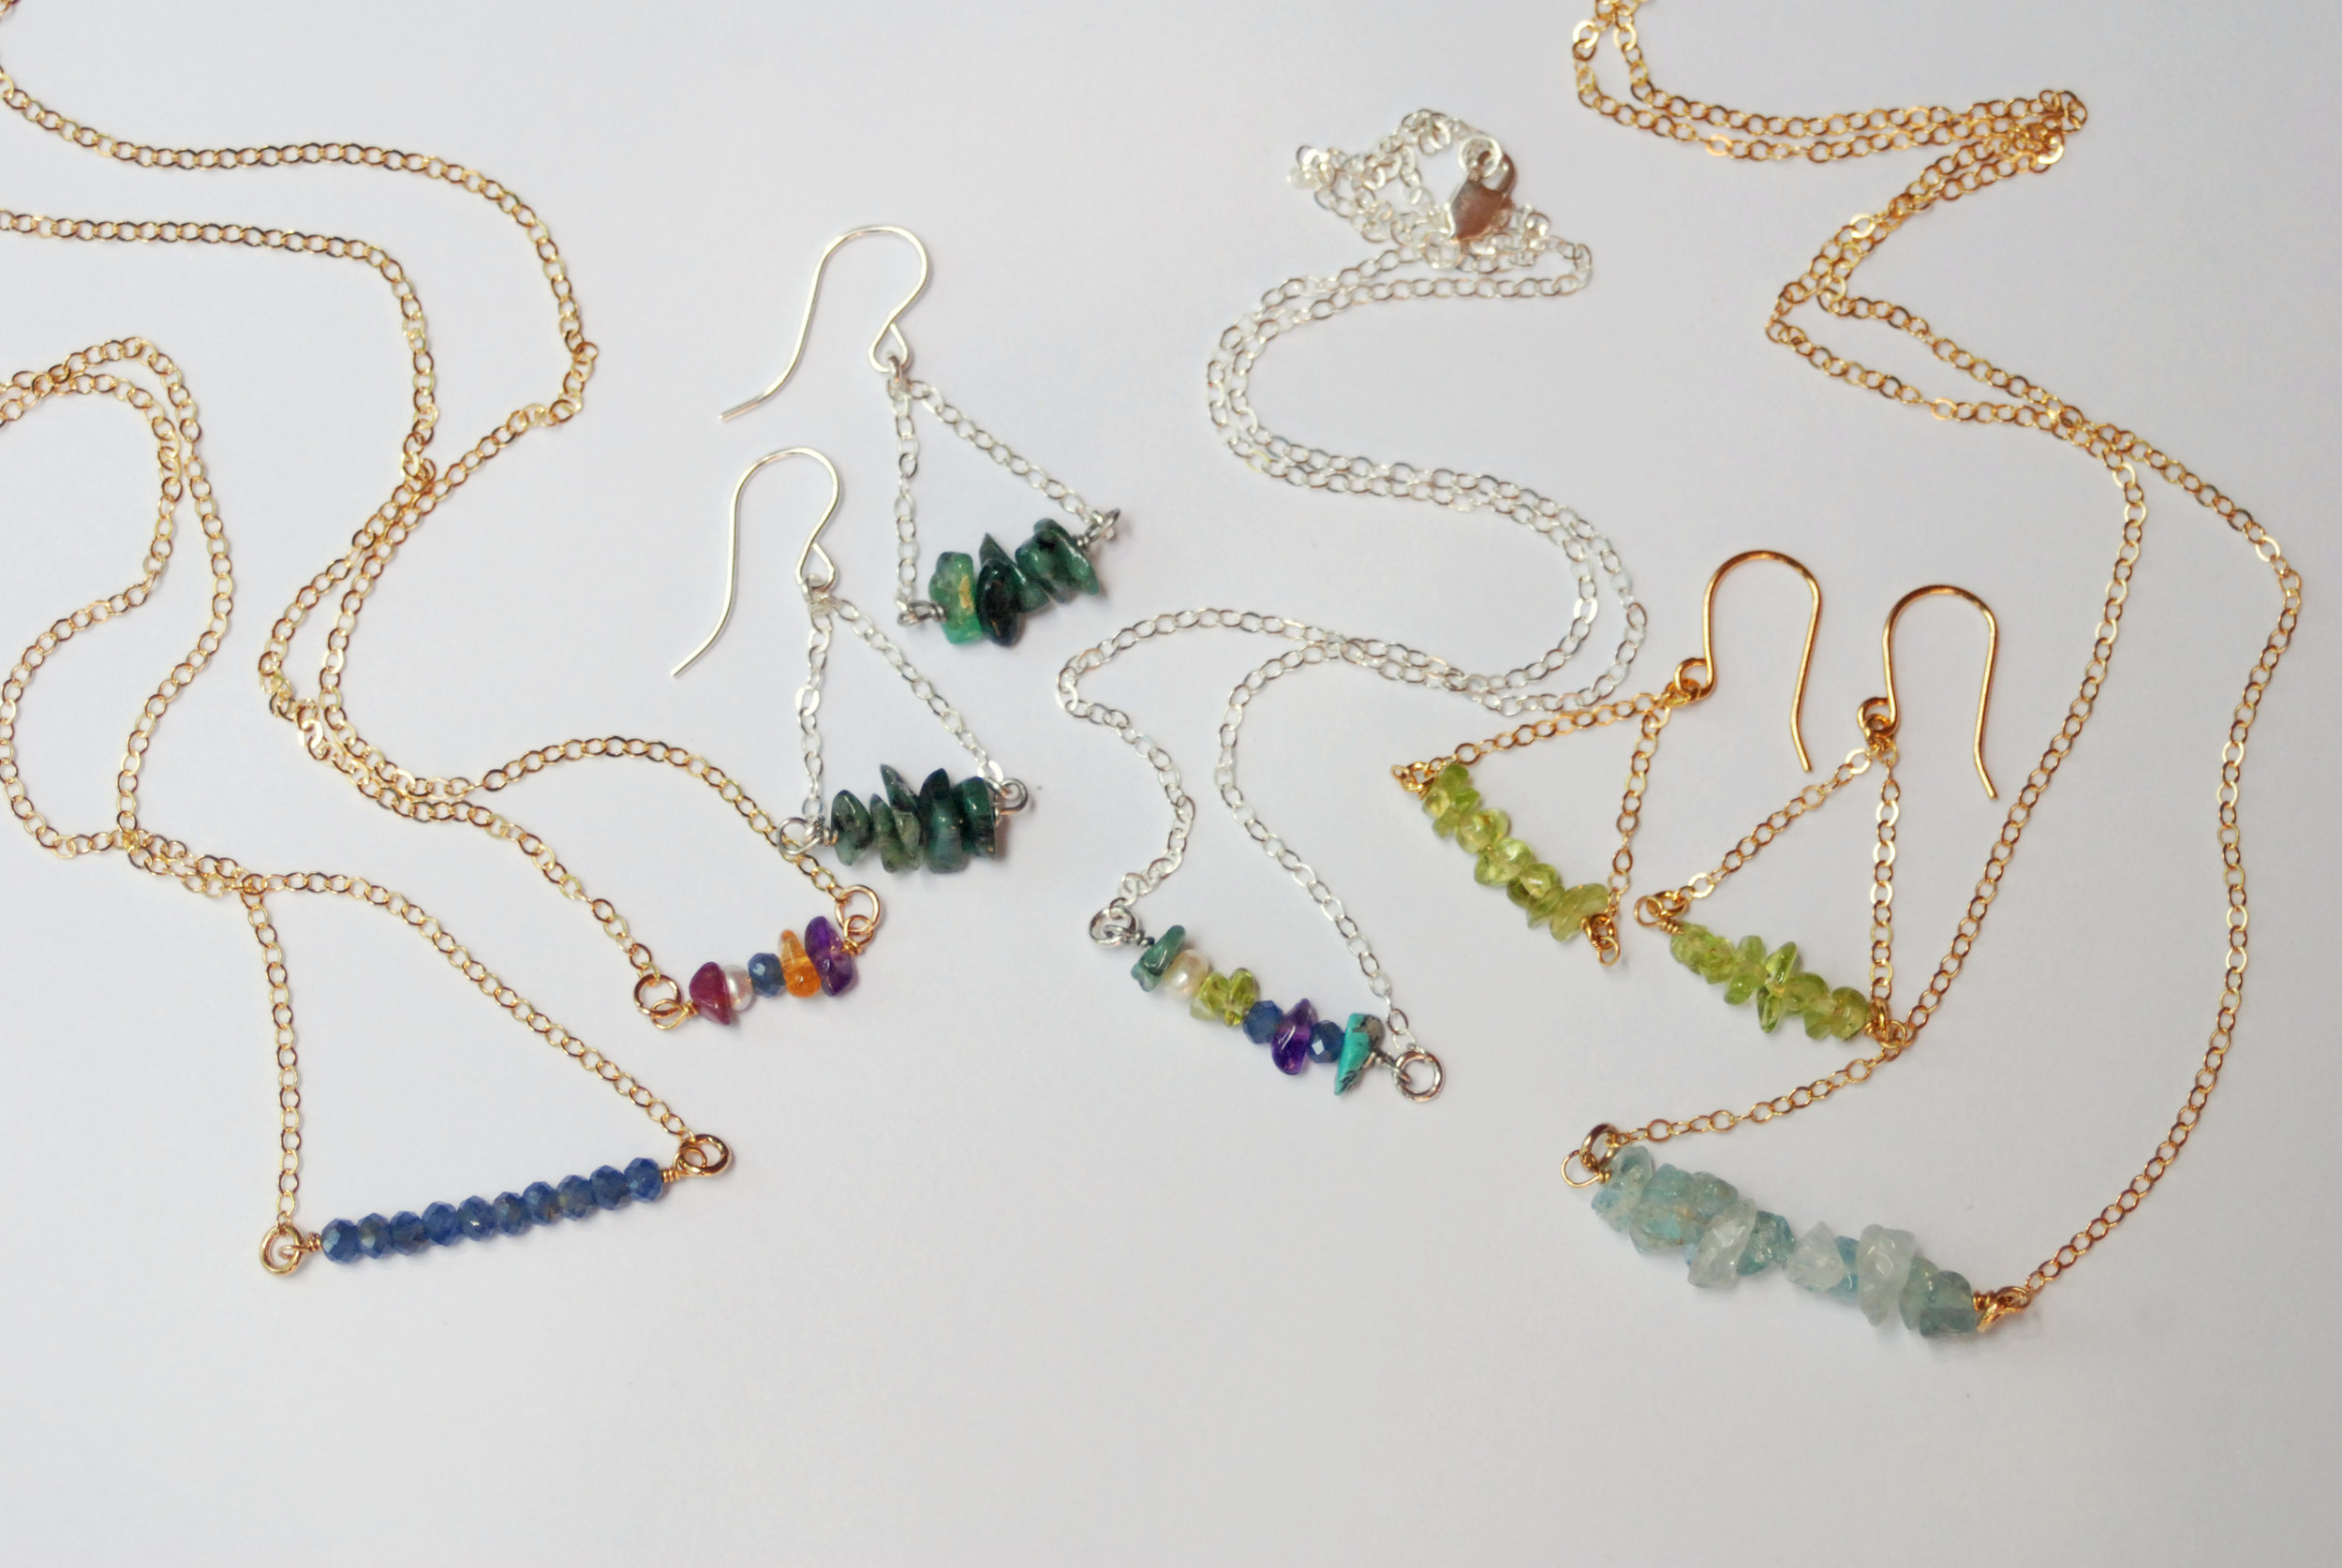 Simple, elegant birthstone strand necklaces and earrings make perfect Mother's Day, birthday and bridesmaid gifts this spring. You can even select your own stones to create a custom multi-stone birthstone strand necklace.